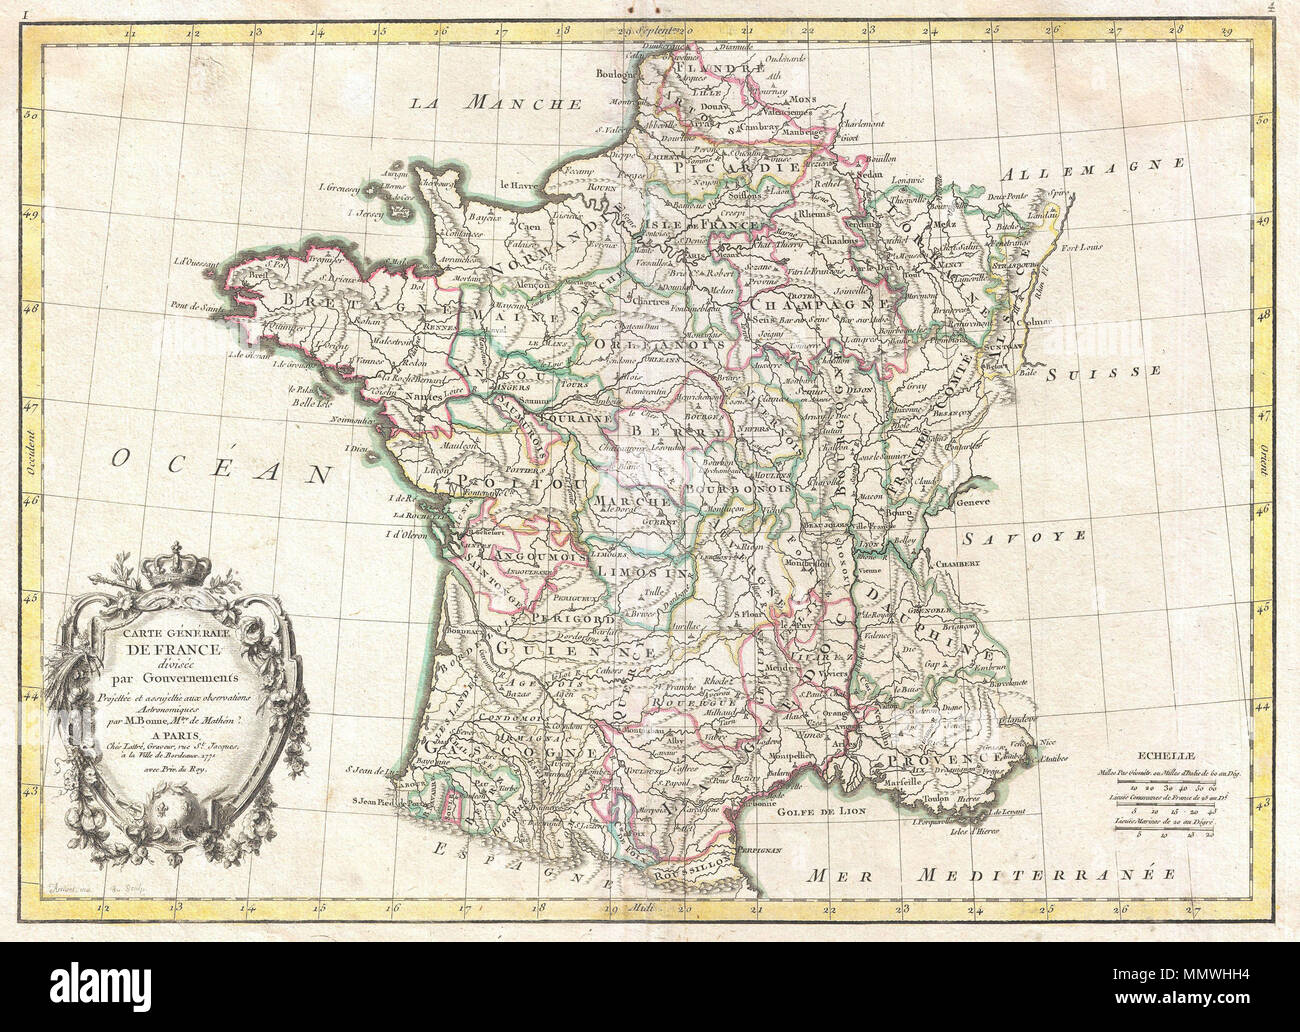 Regional Map Of France In English.English A Beautiful Example Of Rigobert Bonne S Decorative Map Of